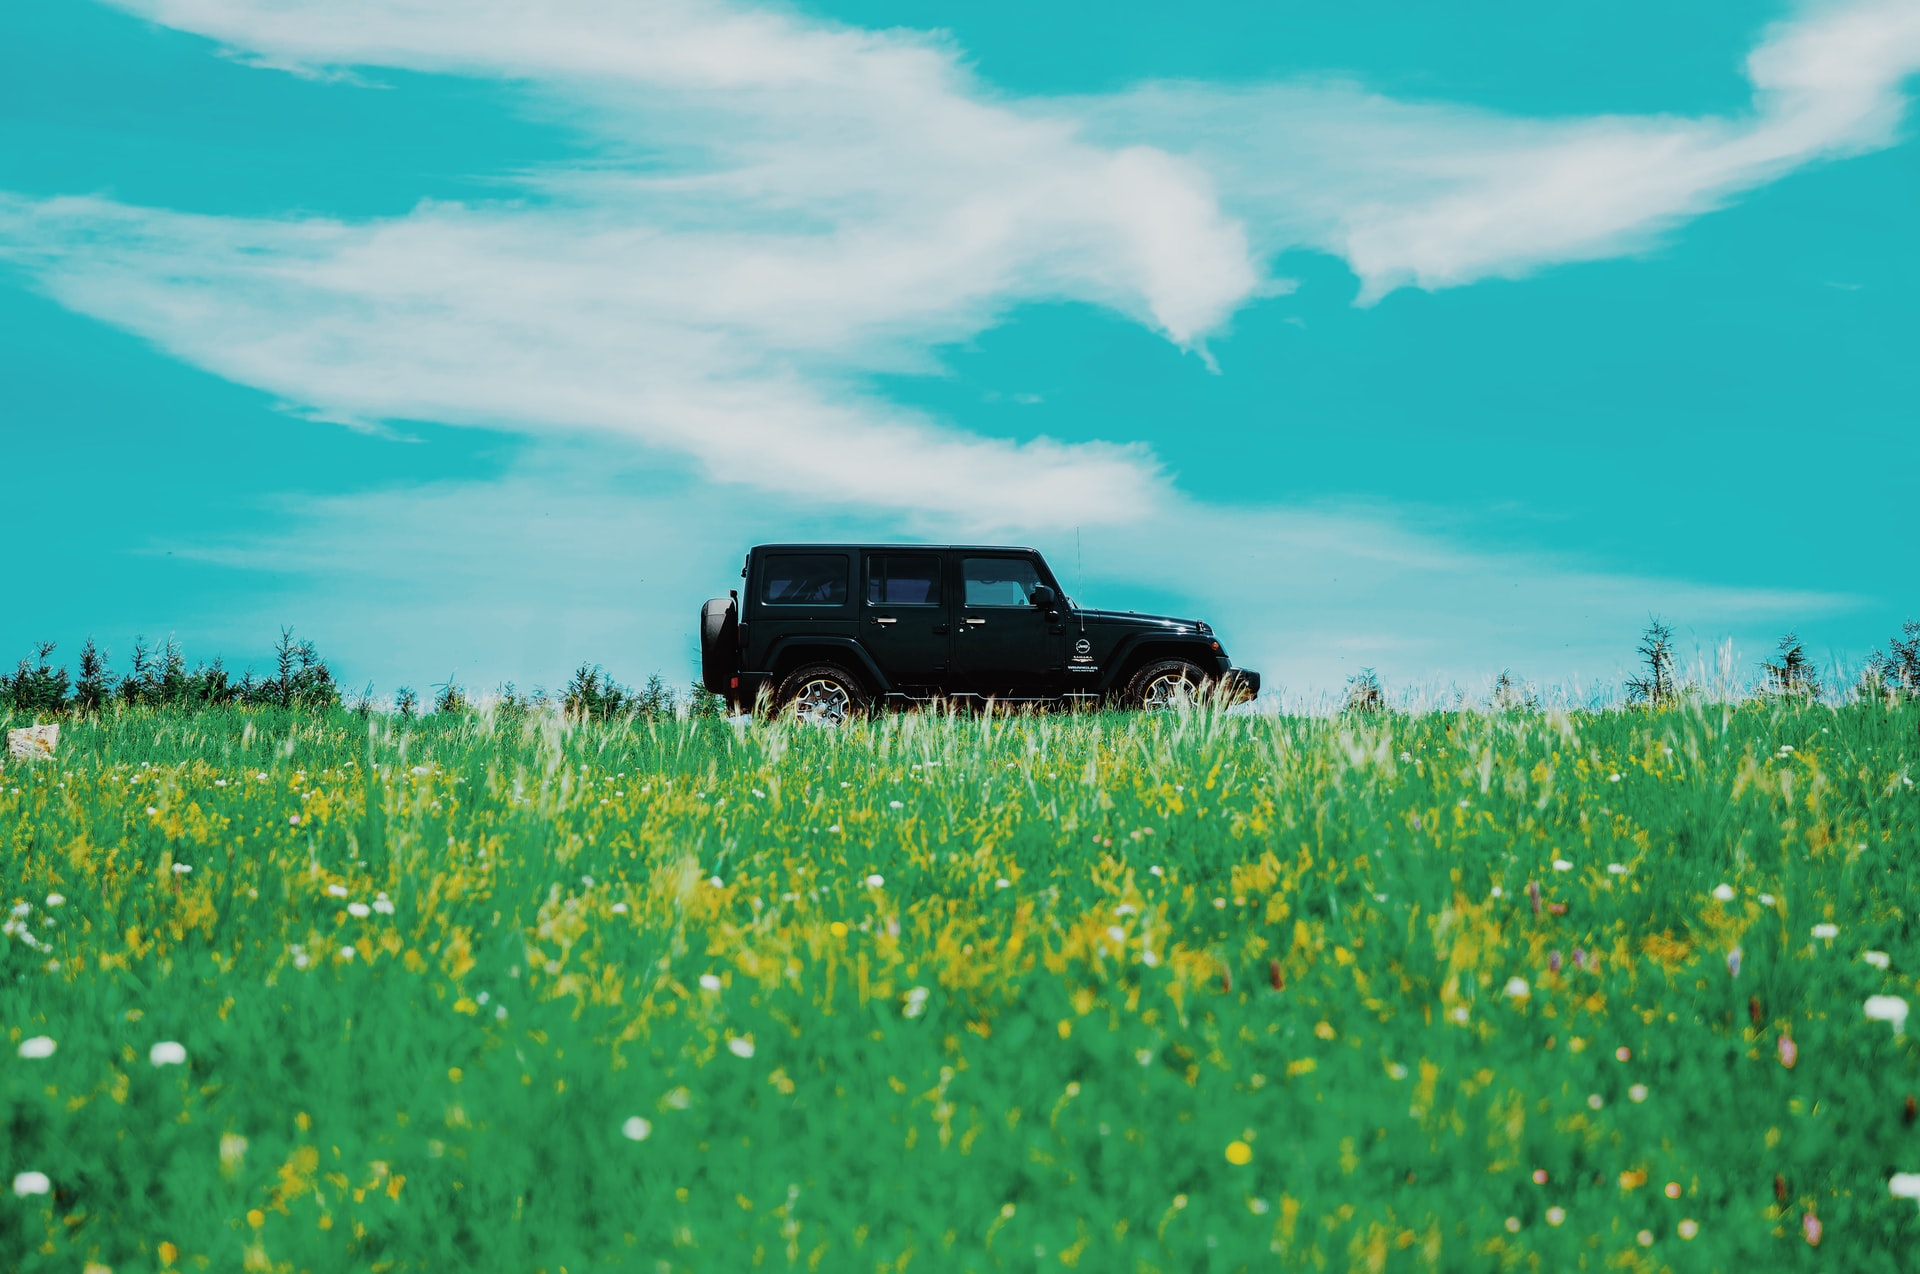 jeep in a field of flowers